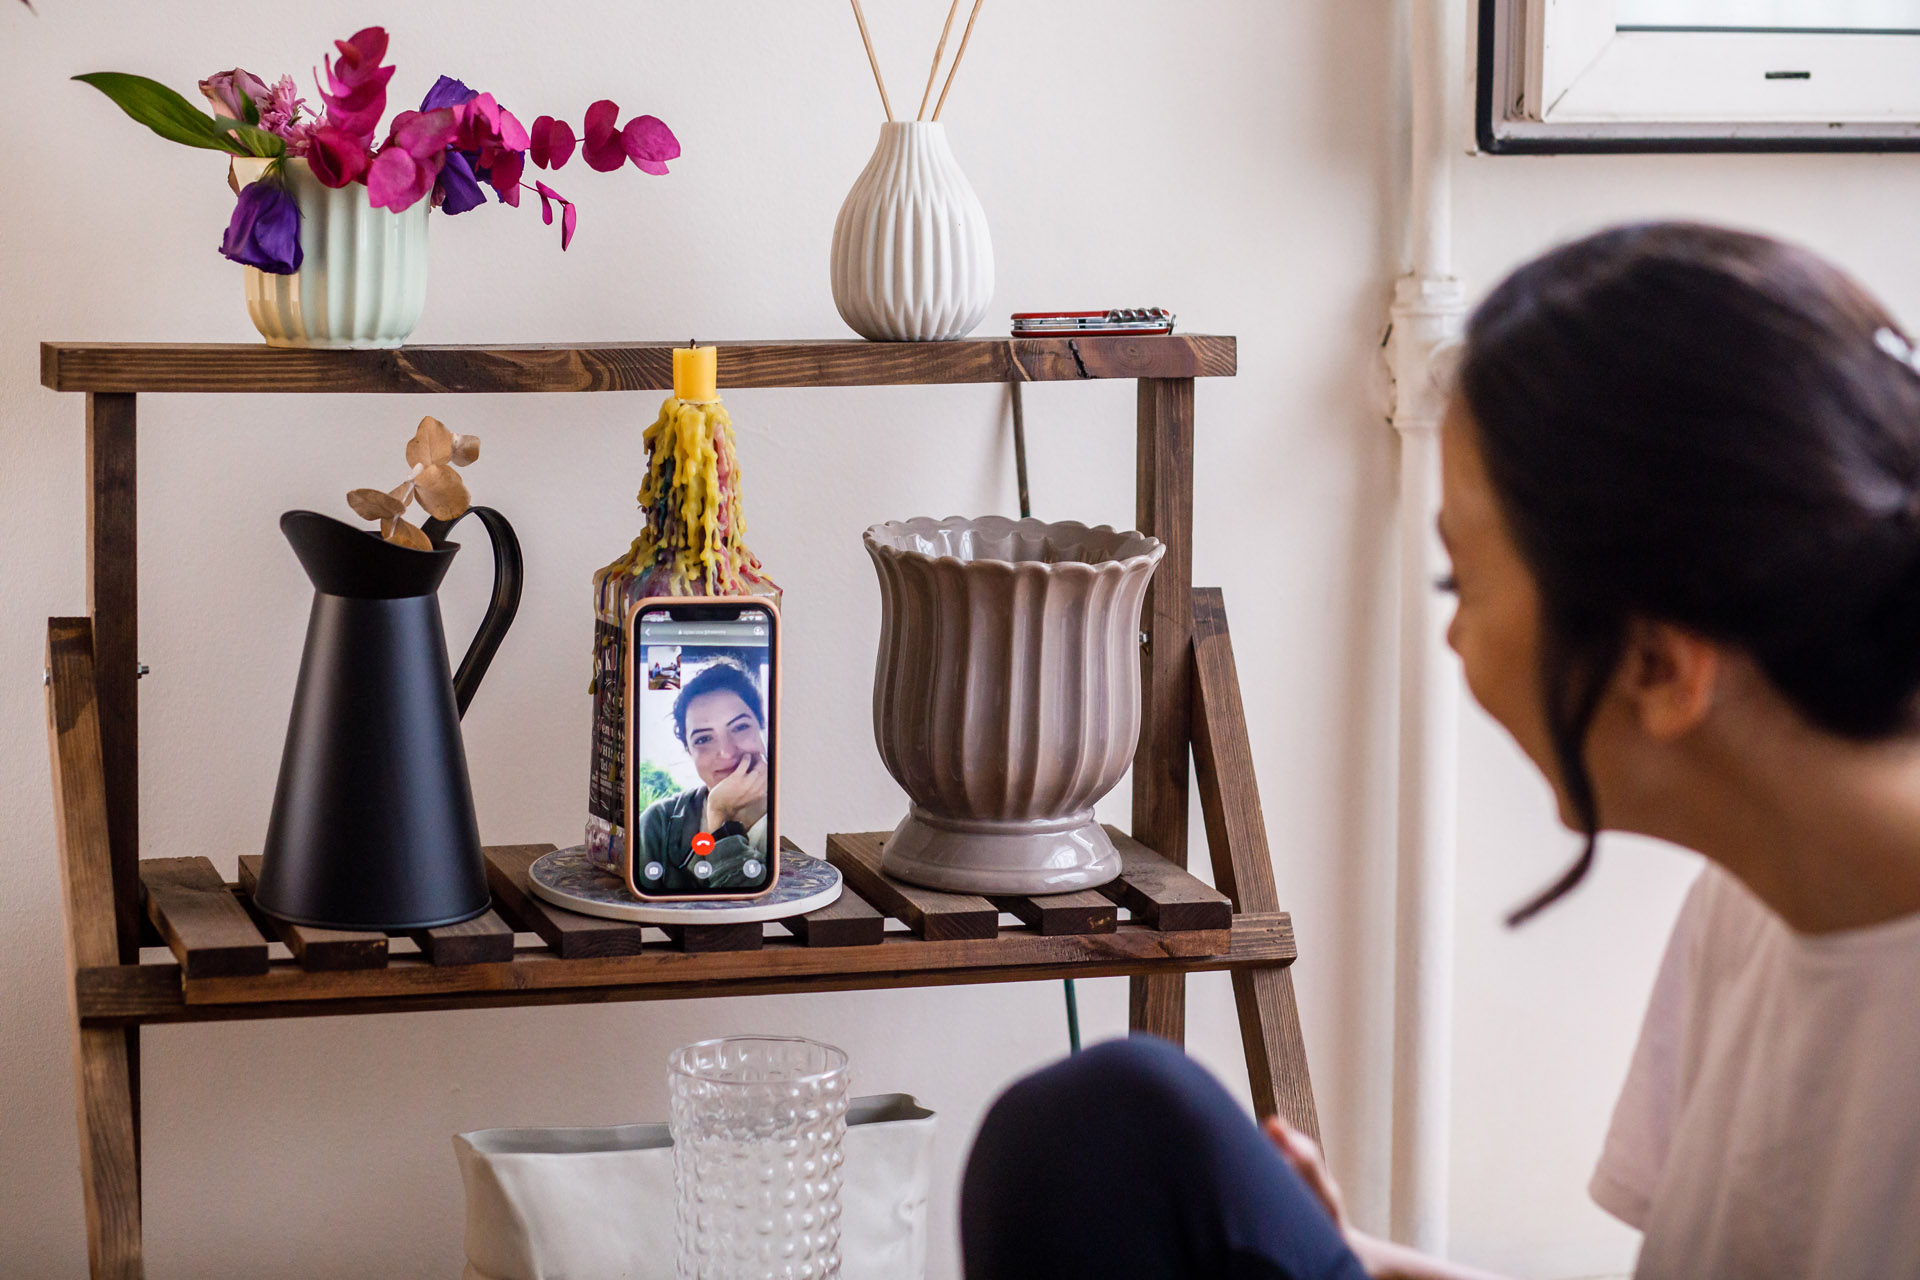 COVID Wedding Prep Pic, Istanbul, Turkey | The brides best friend was able to follow the whole process by video call technology